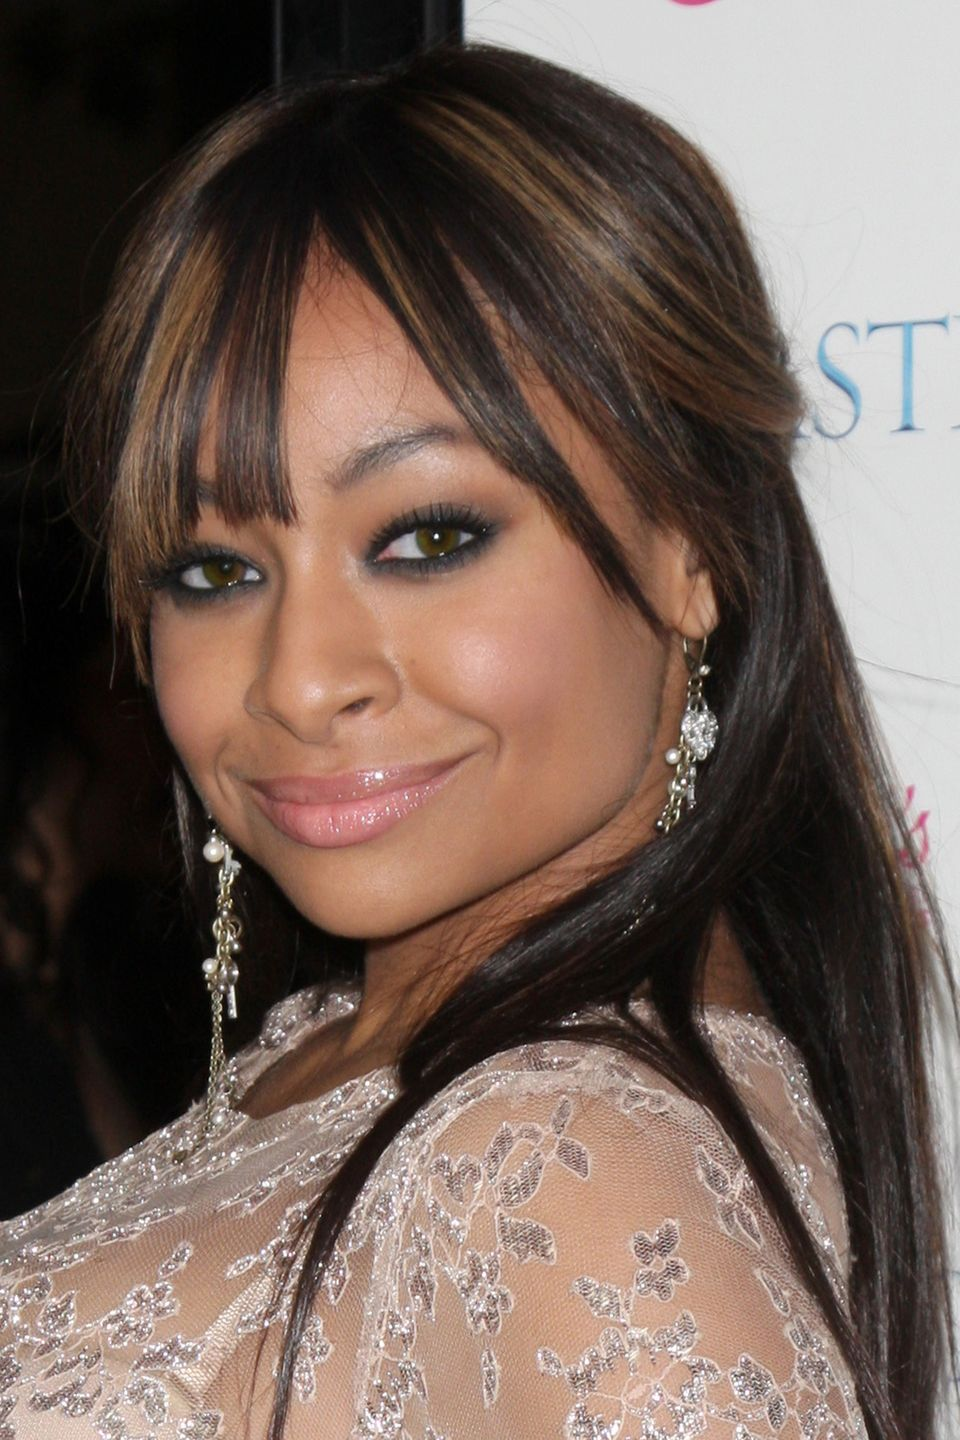 "Raven-Symone <a href=""https://www.huffpost.com/entry/raven-symone-comes-out_n_3697024"" target=""_blank"">came out via Twitter</"